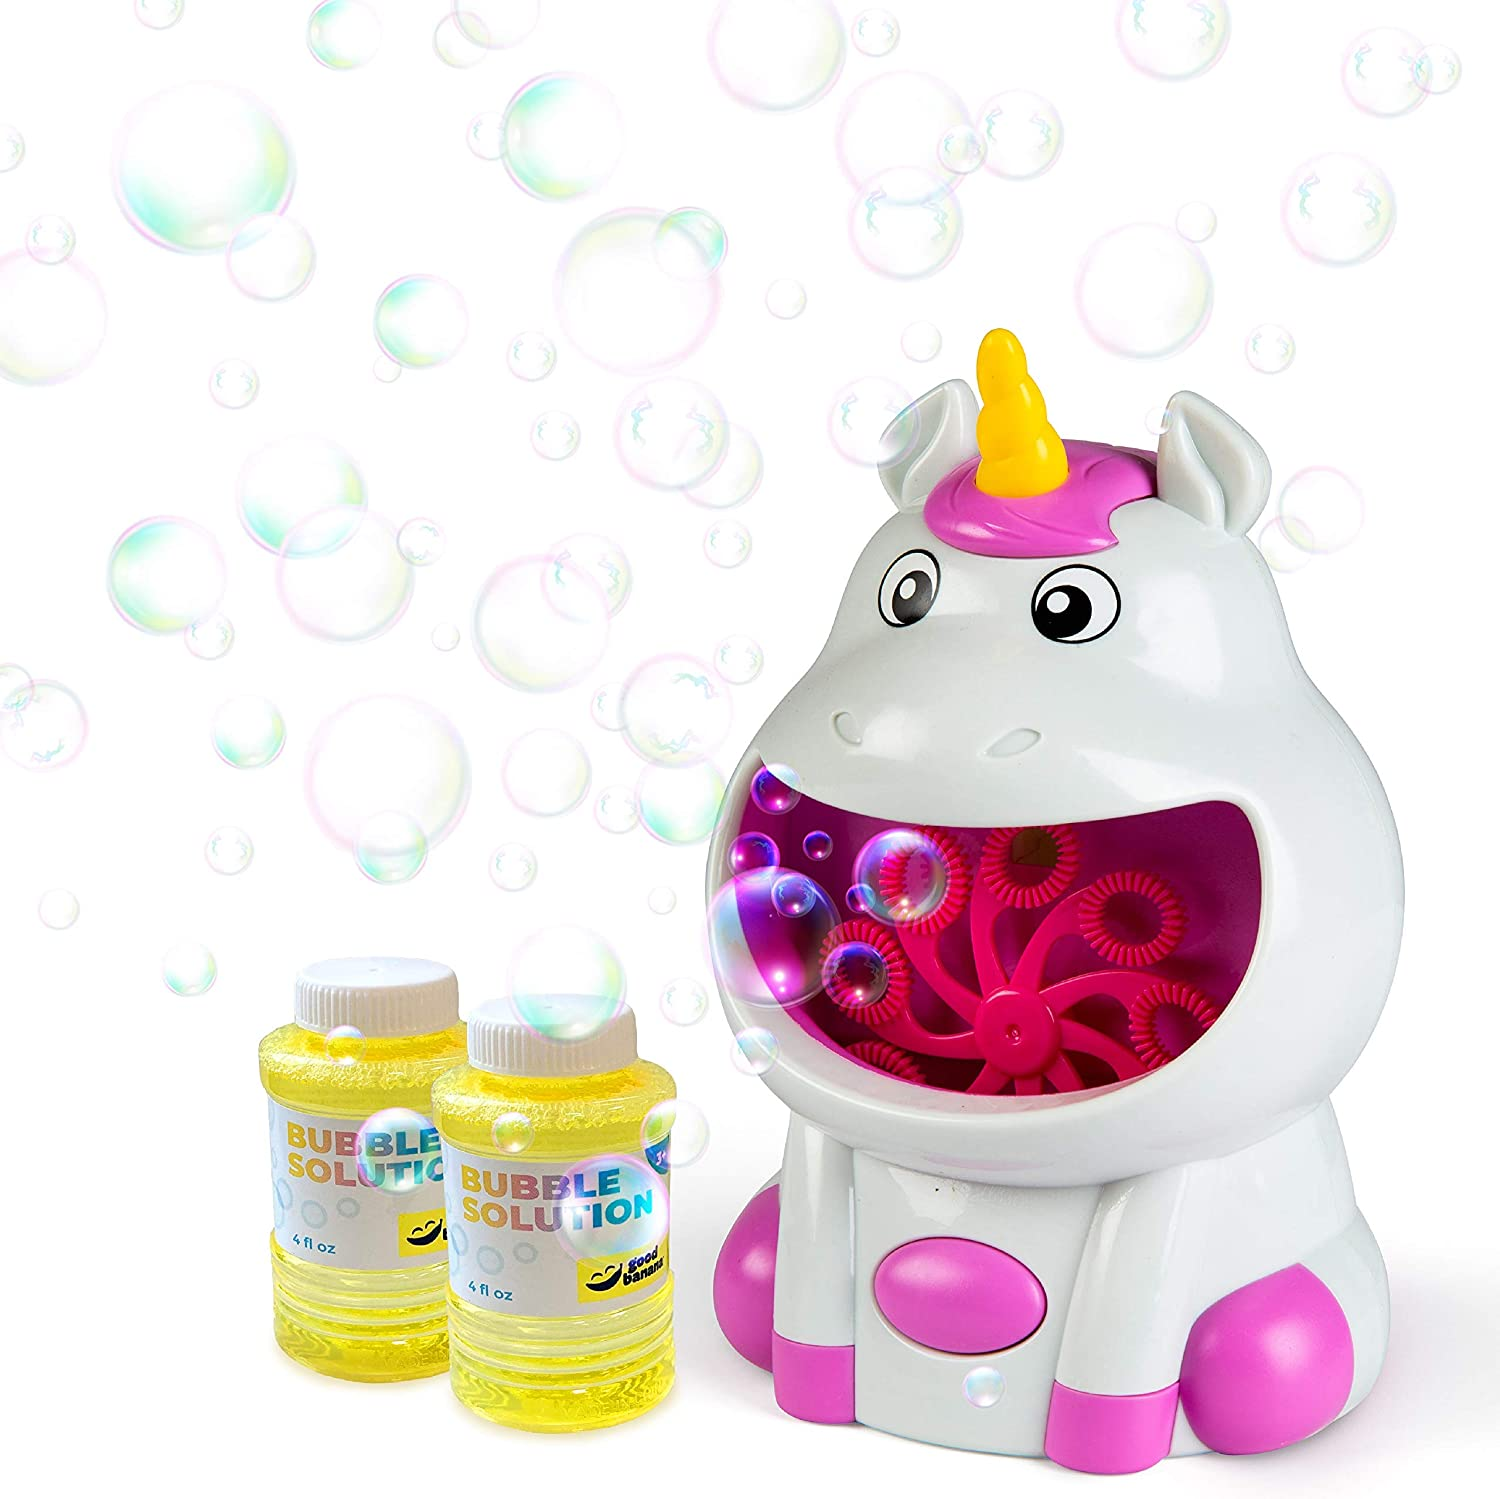 Good Banana Unicorn Bubble Machine, Cordless Automatic Bubble Maker, Blower for Kids, 2 Bottles of Solution Included, Indoor and Outdoor Play, Backyard, Patio, Bath Time, Big Billows of Bubbles